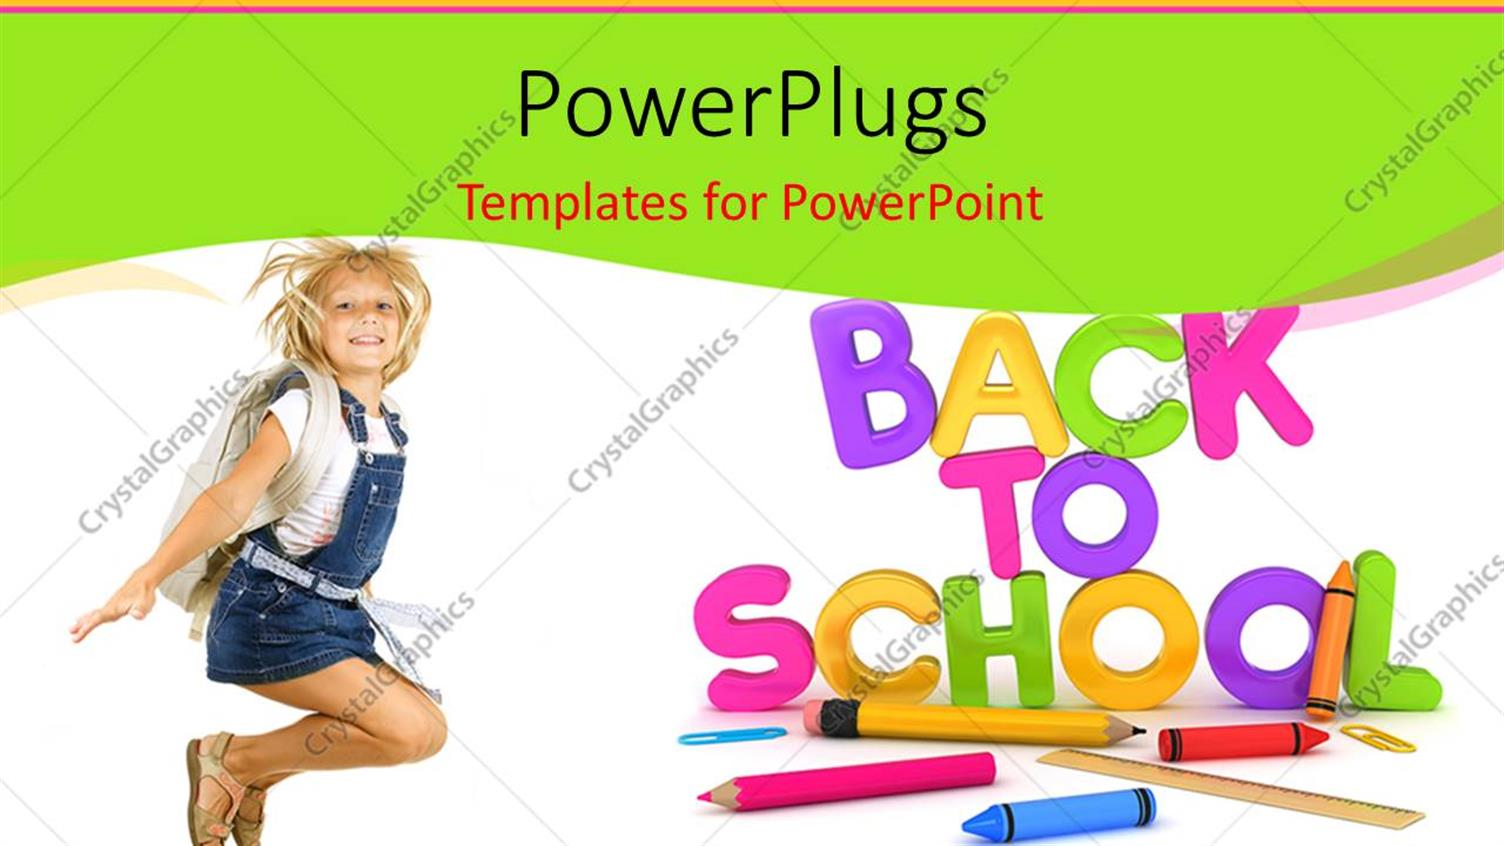 Powerpoint template learning depiction with school supplies and powerpoint template displaying learning depiction with school supplies and cute girl dressed for school toneelgroepblik Choice Image